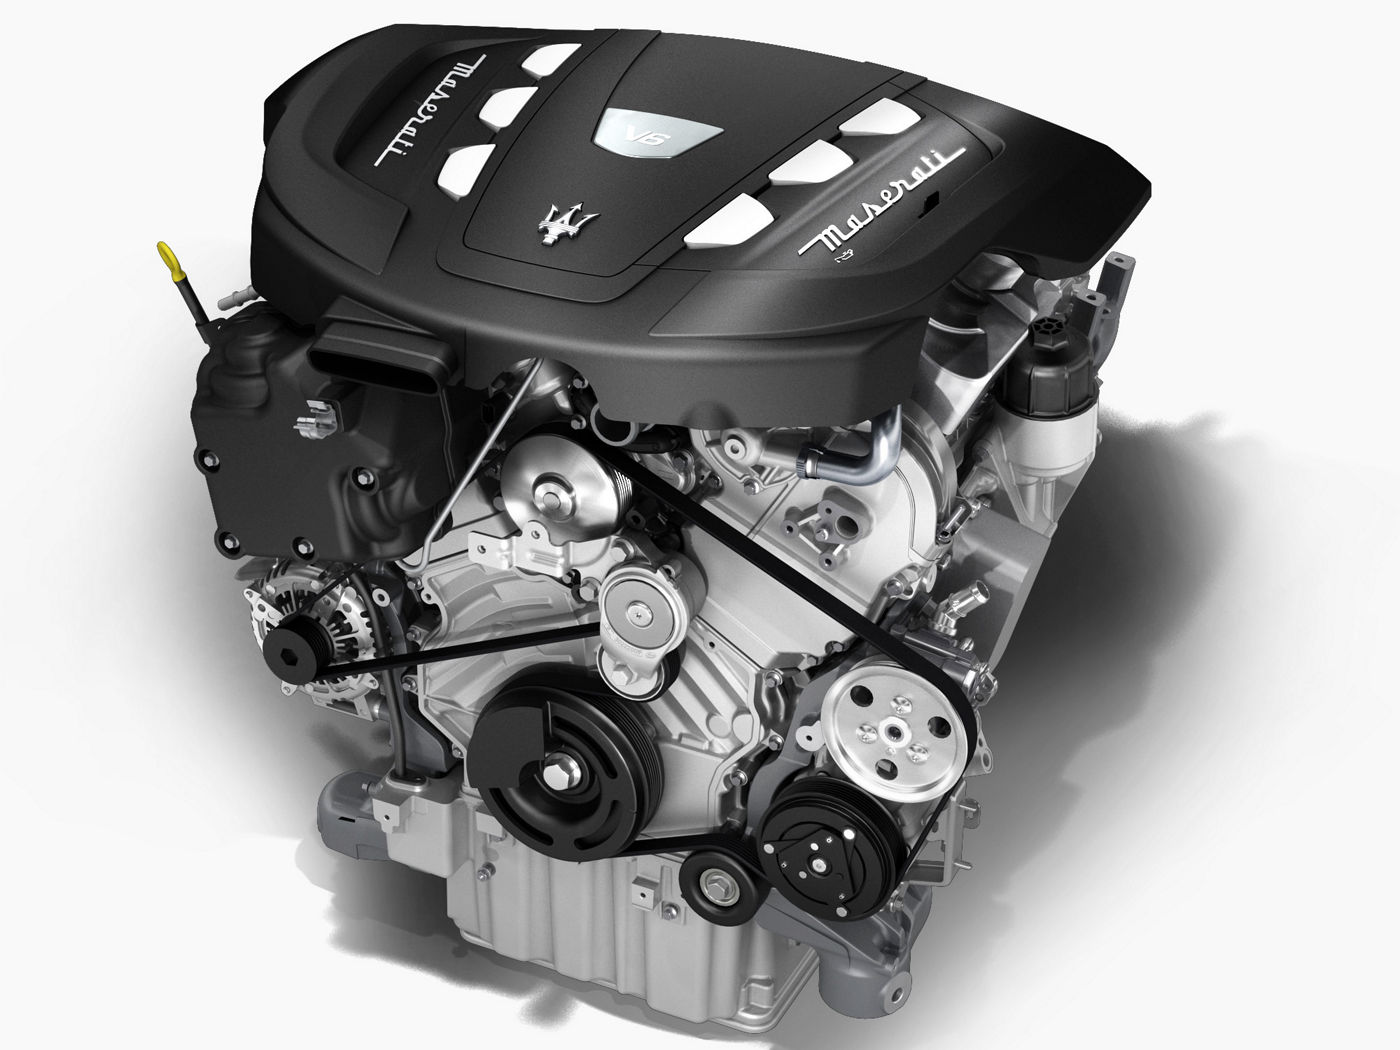 V6 diesel engine for the Maserati Ghibli model: structure and details